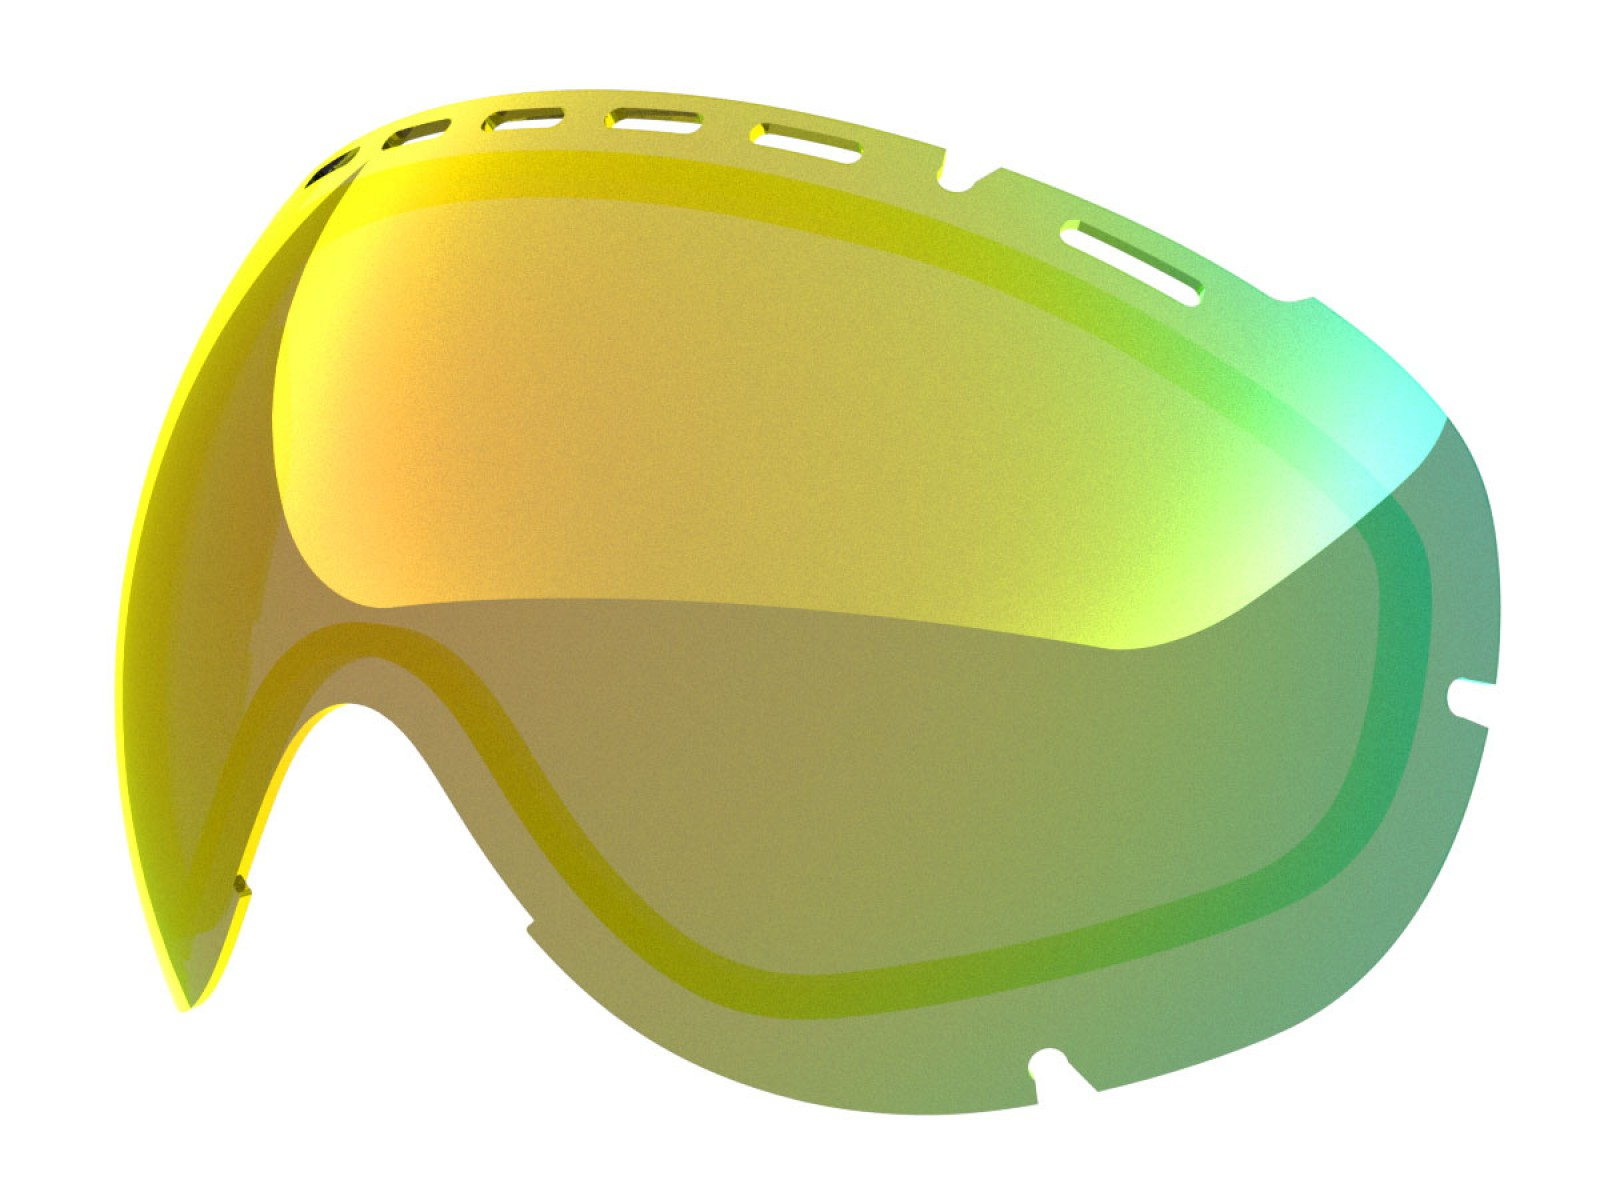 GOLD MCI LENS FOR EYES GOGGLE